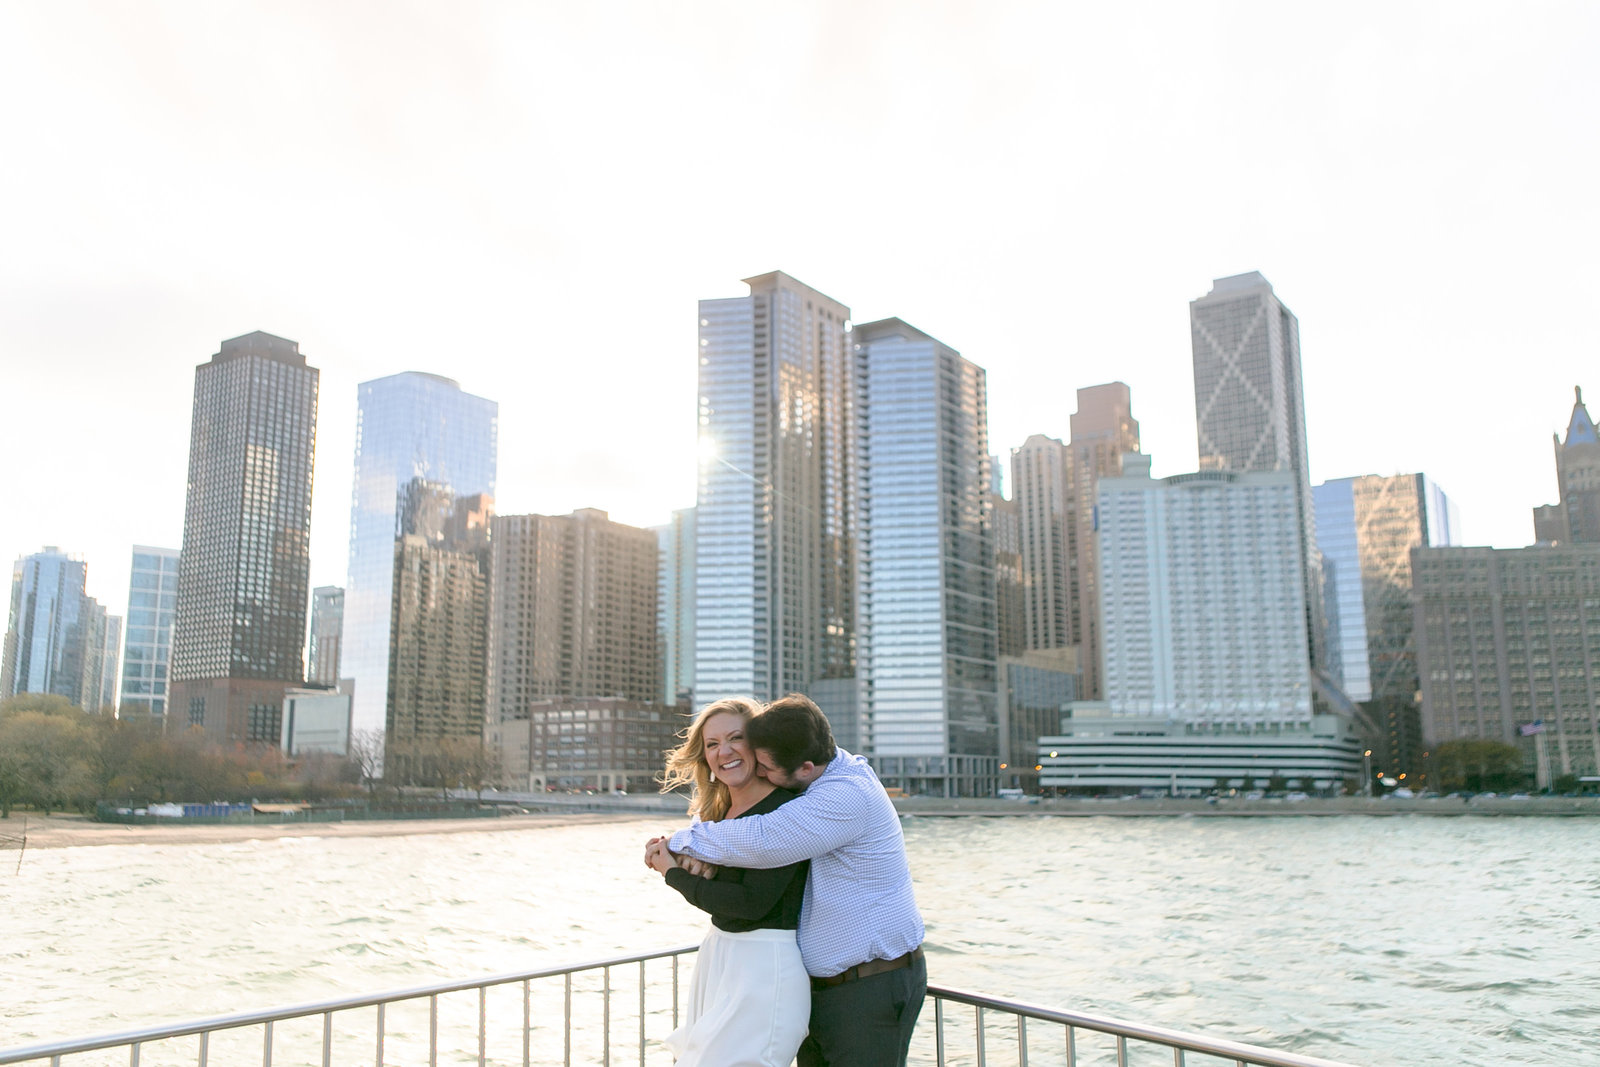 2016Nov8-Chicago-Engagement-JanaMariePhotography-0023